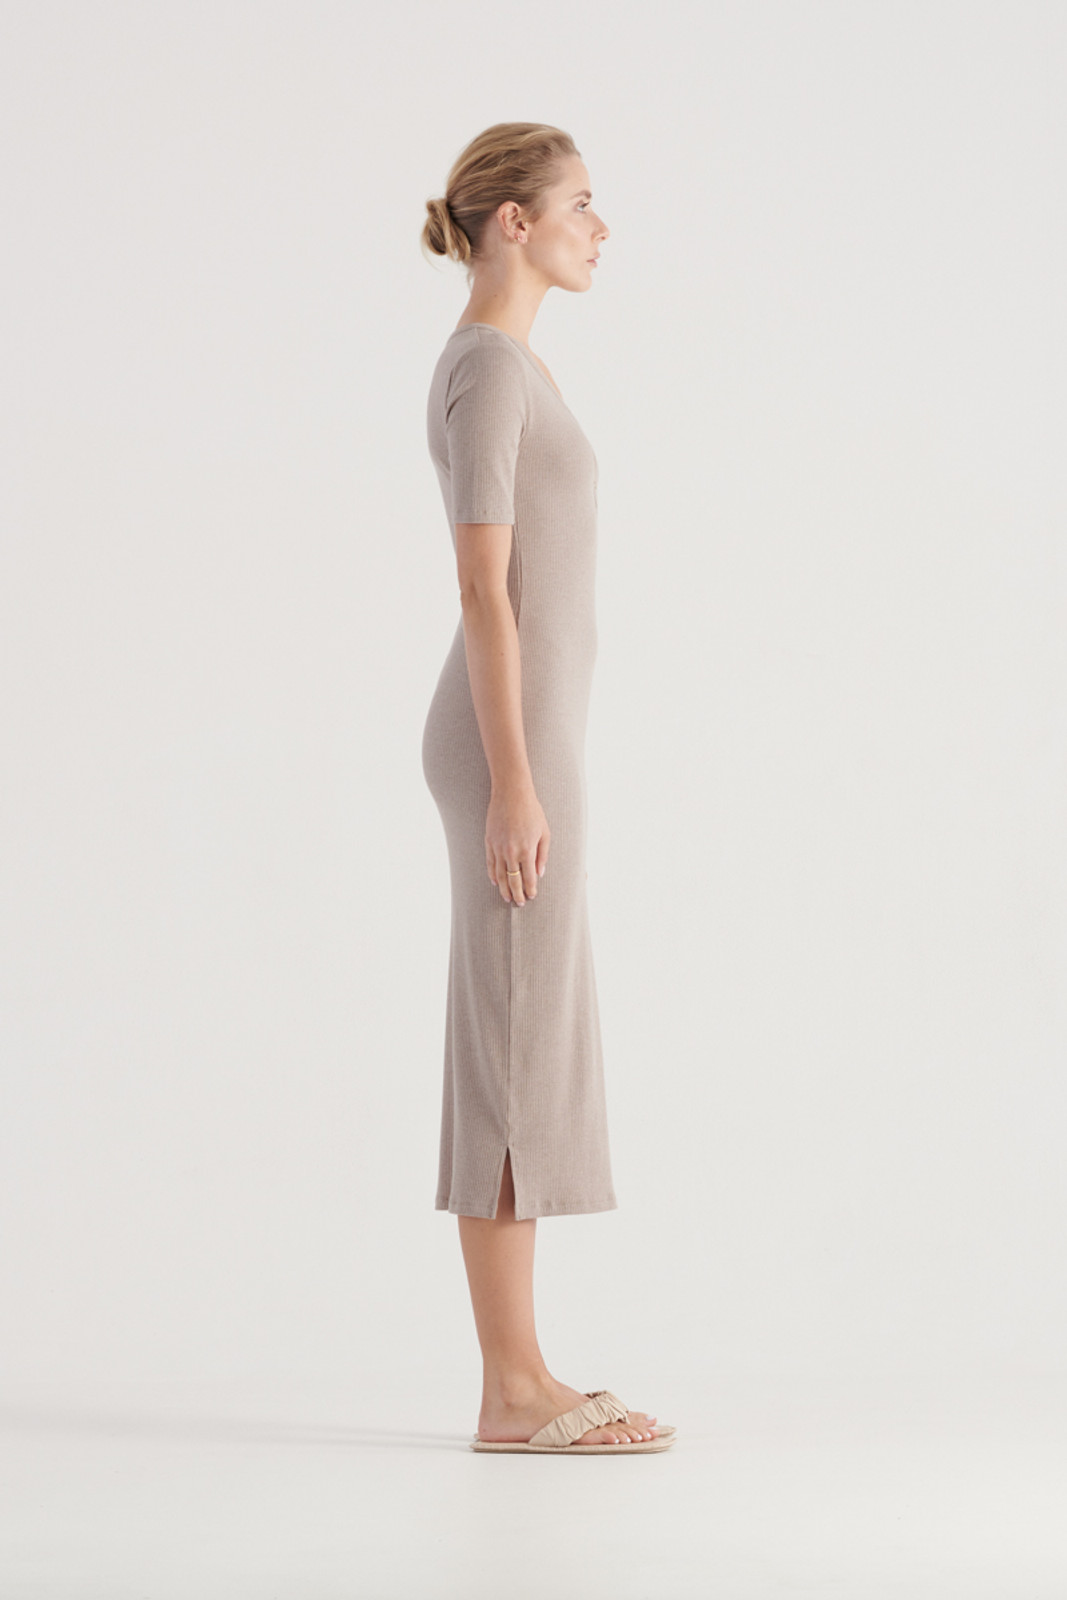 Elka Collective WomensHadley Dress Taupe Marle  3